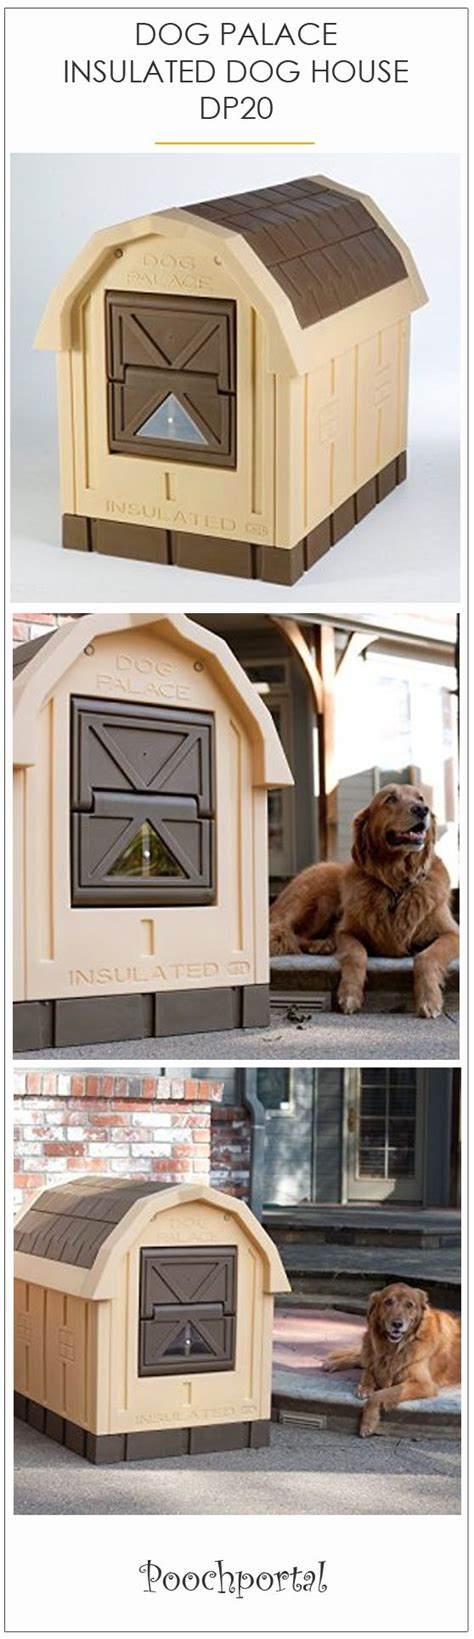 dog palace insulated dog house best 25 plastic dog house ideas on pinterest